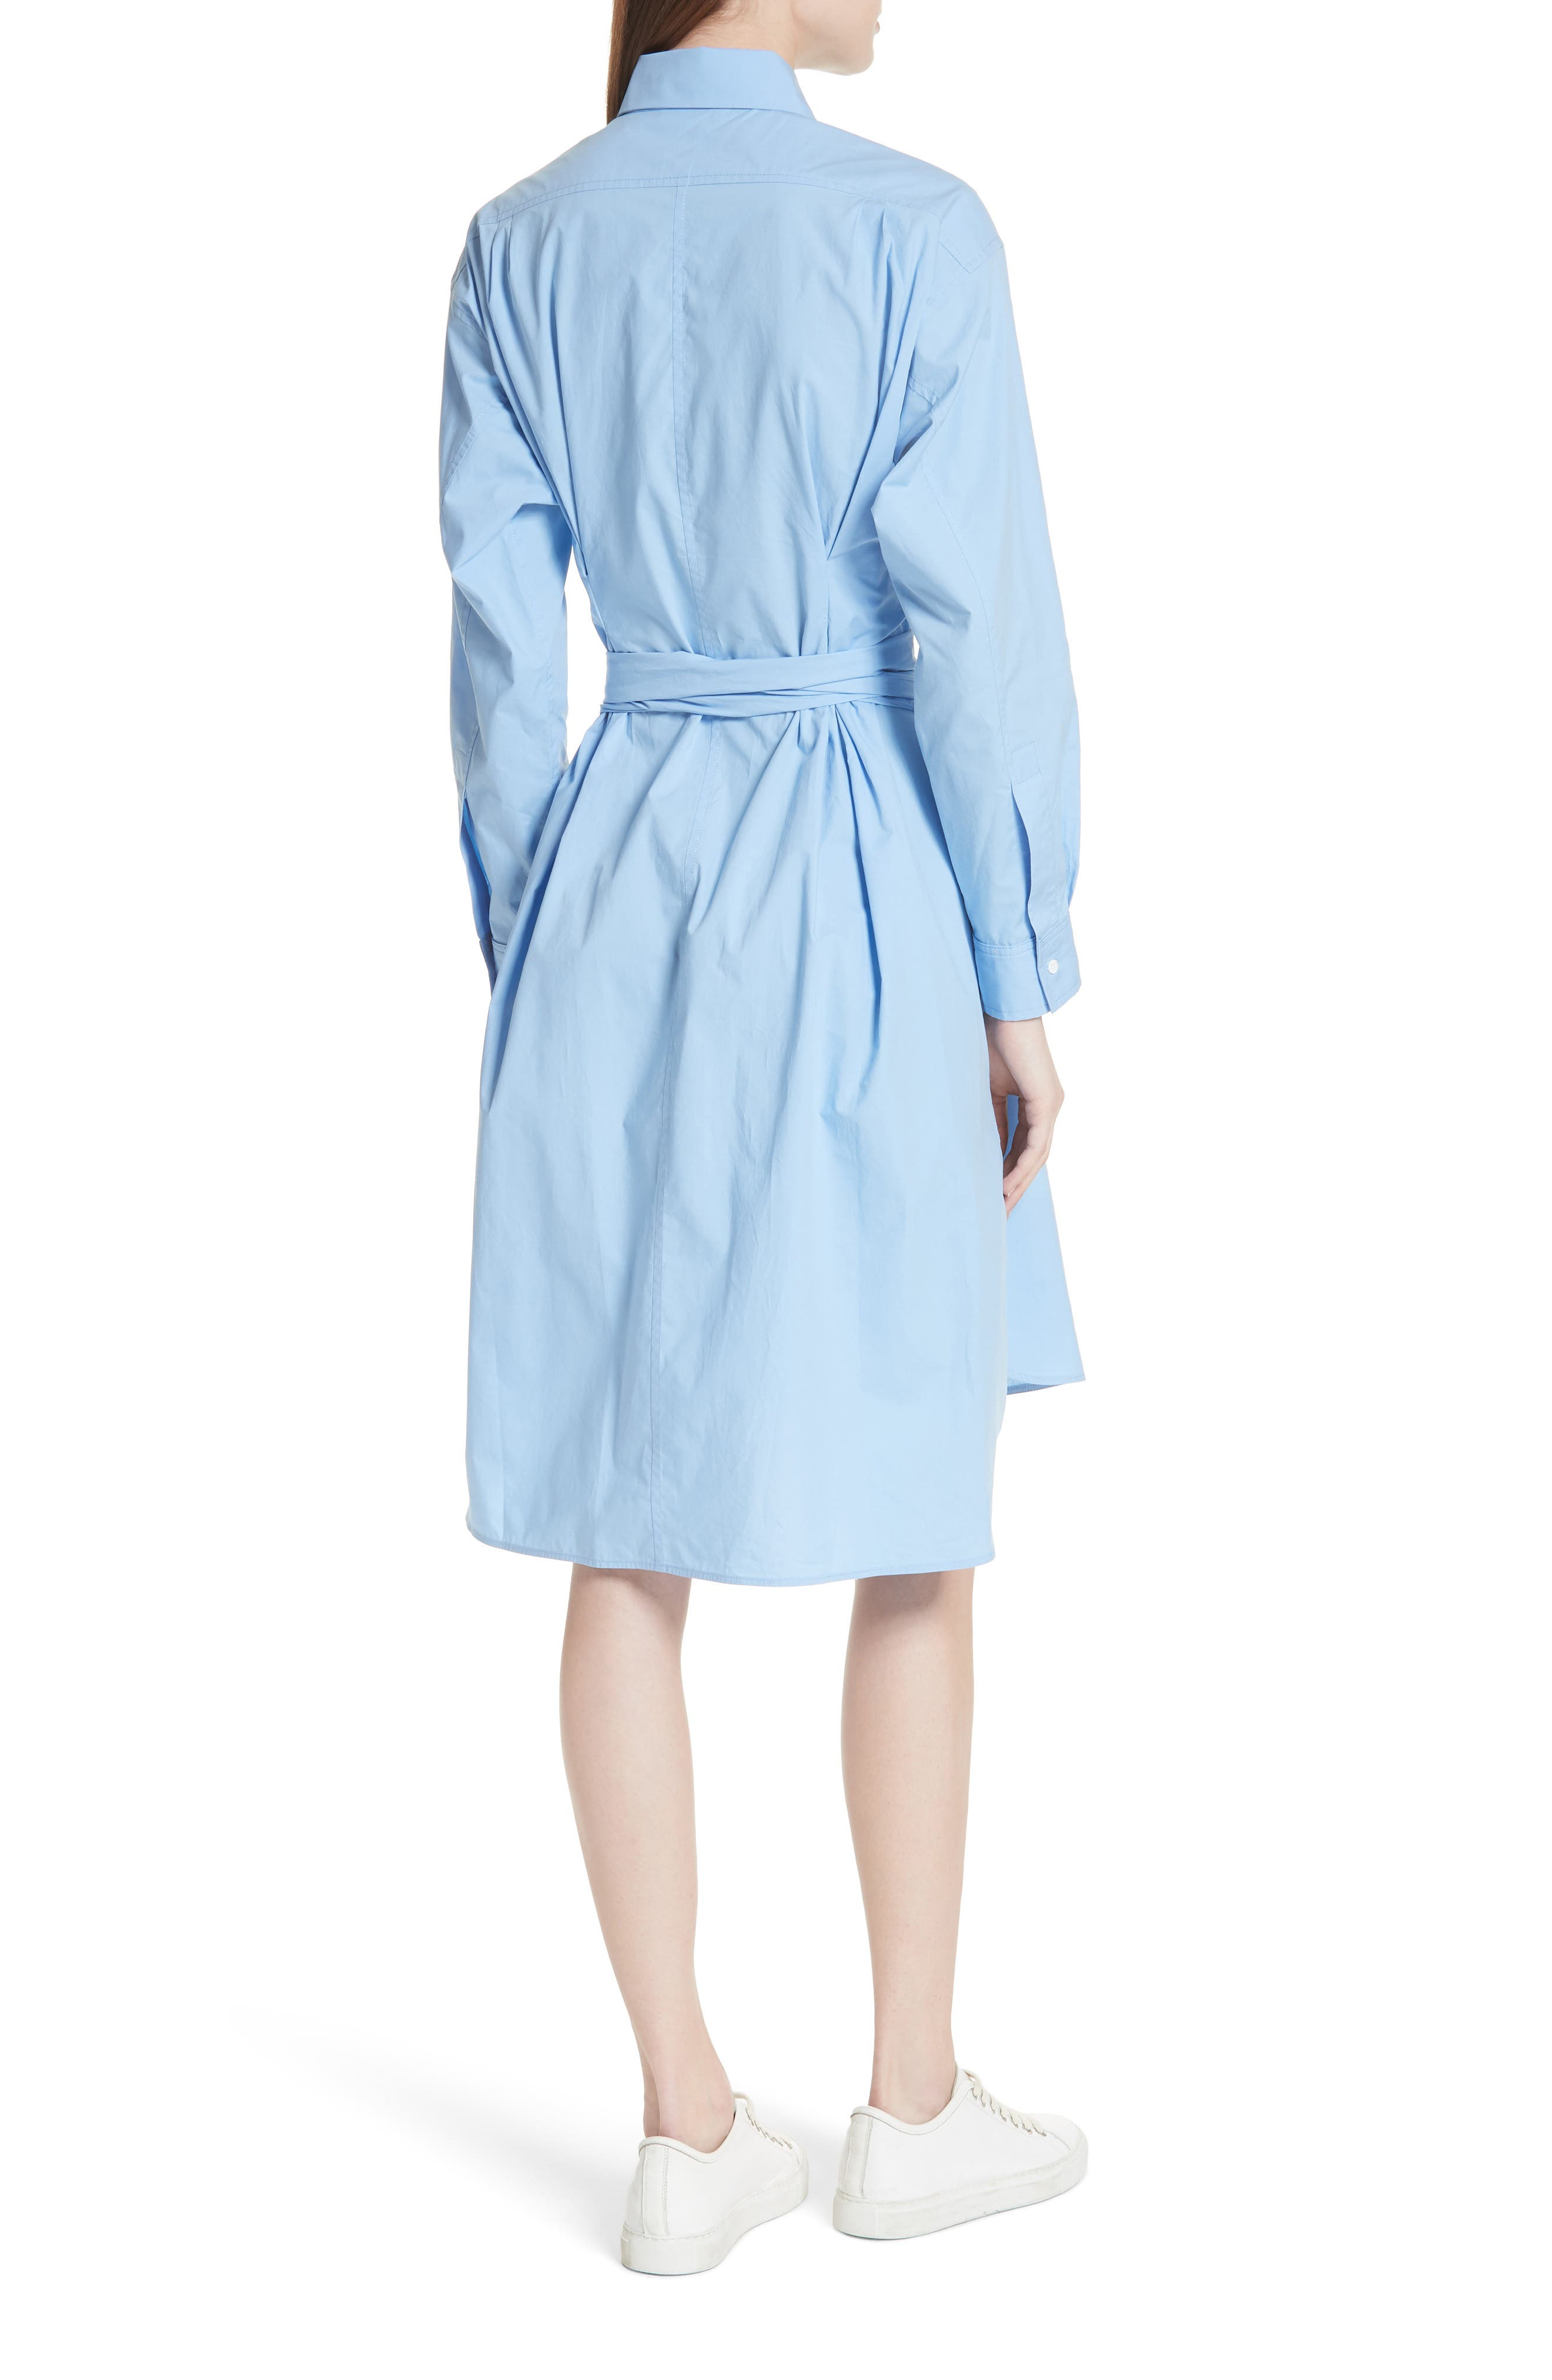 Bleu Ciel Cotton Shirtdress,                             Alternate thumbnail 2, color,